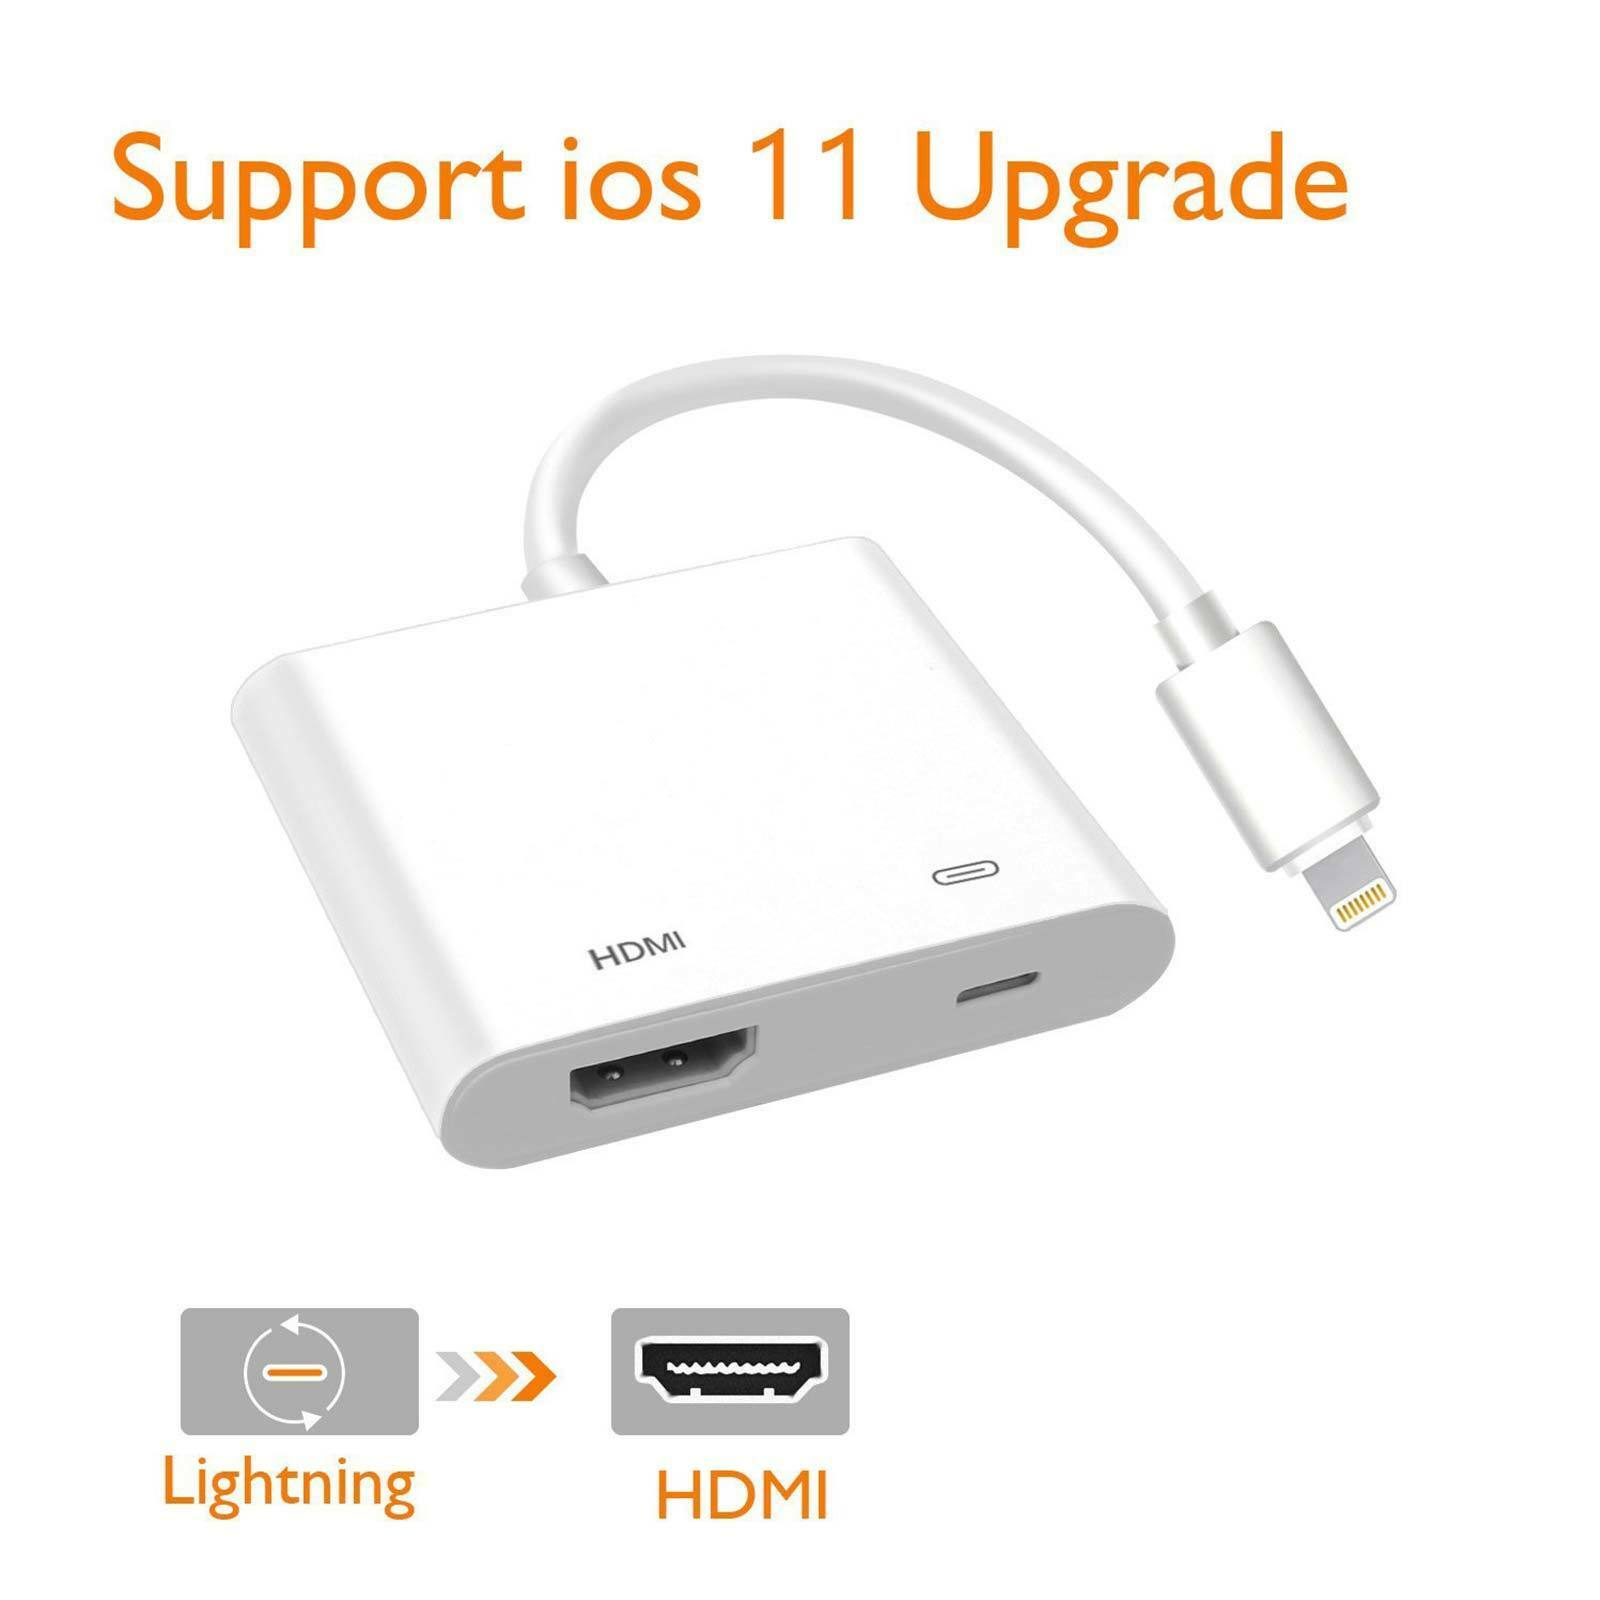 Handy-zubehör Hell 8 Pin Lightning Zu Hdmi Digital Tv Av Adapter Kabel Für Apple Ipad Iphone 7 8 X A/v-kabel & Adapter